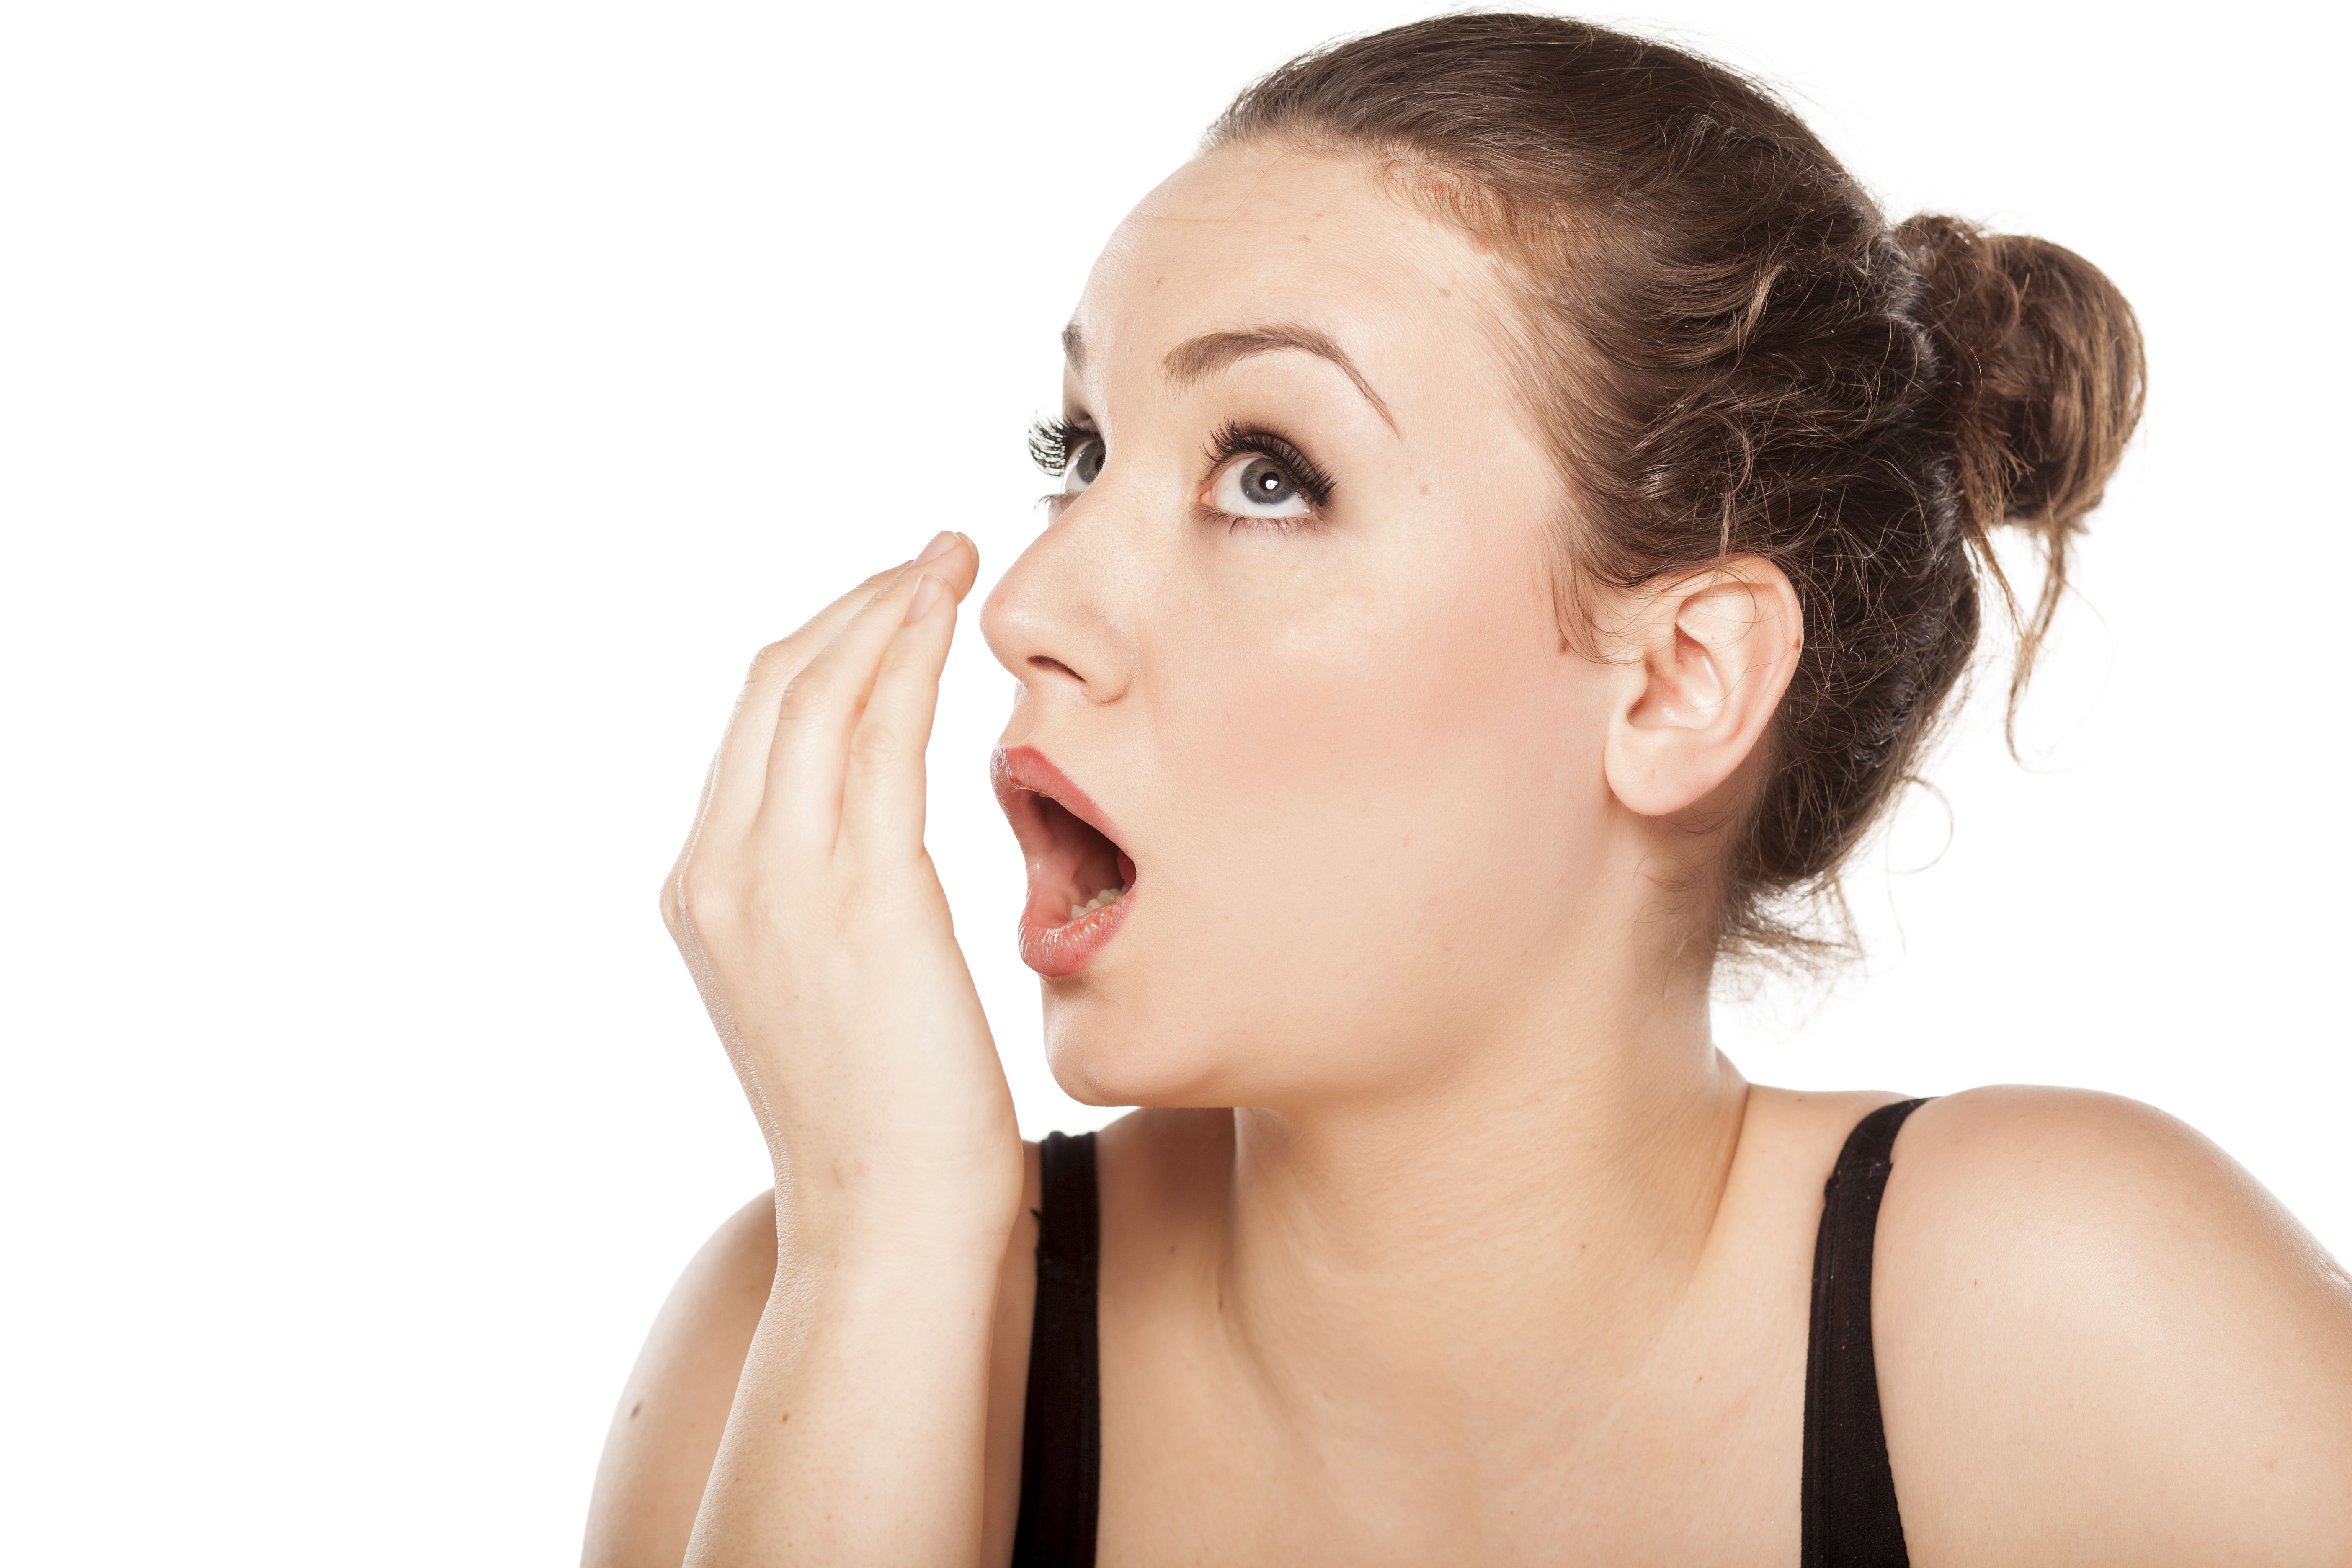 Bad breath: what to do 53